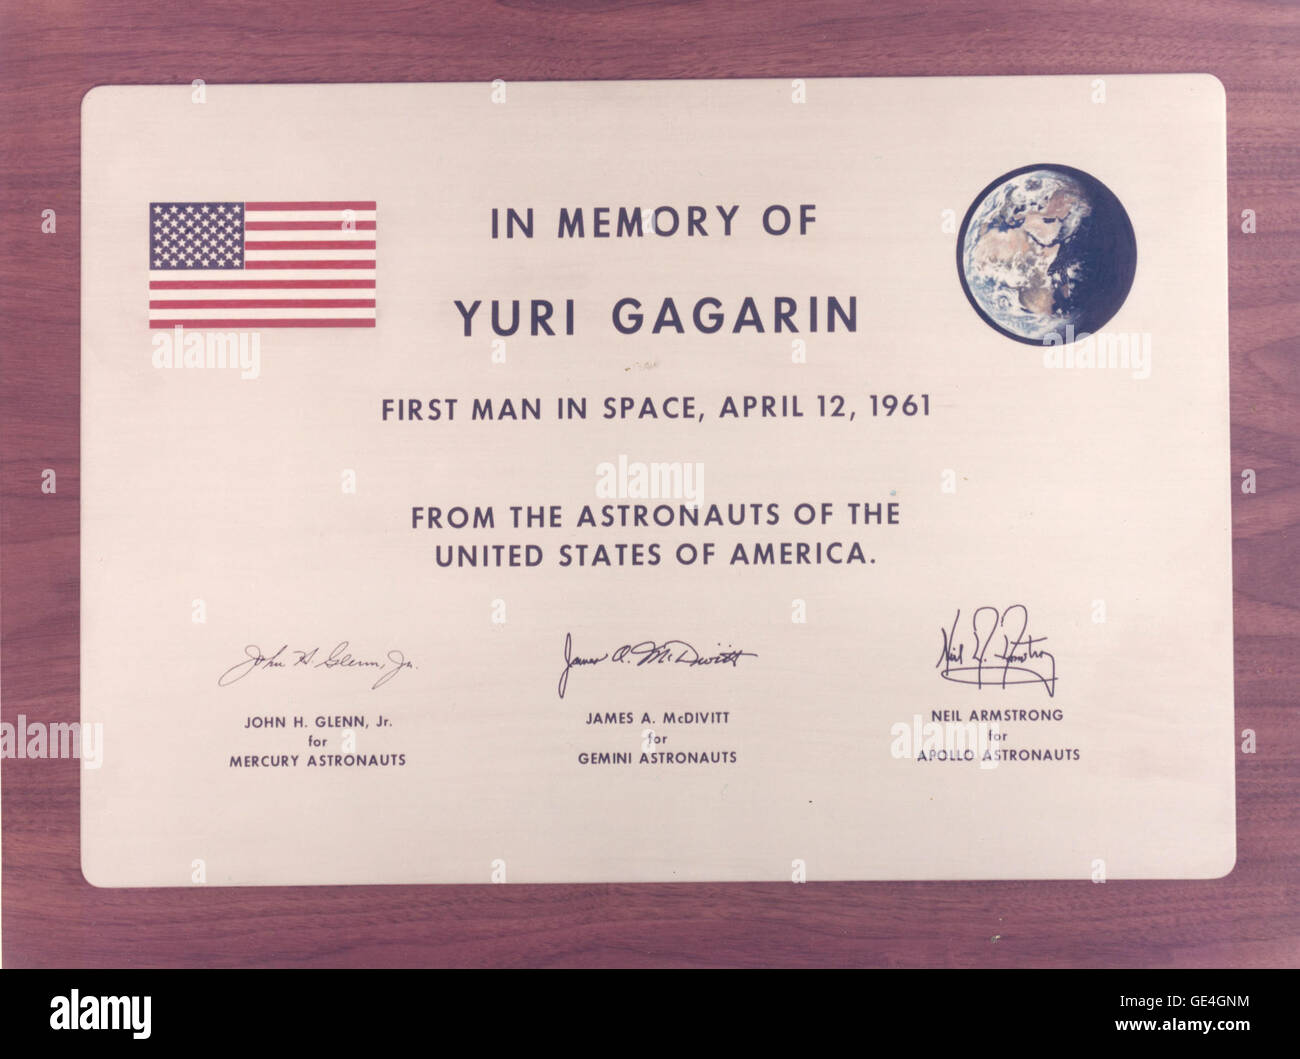 Dr. George M. Low, acting administrator of NASA, presented to the USSR on January 21, 1971, a plaque in memory of - Stock Image